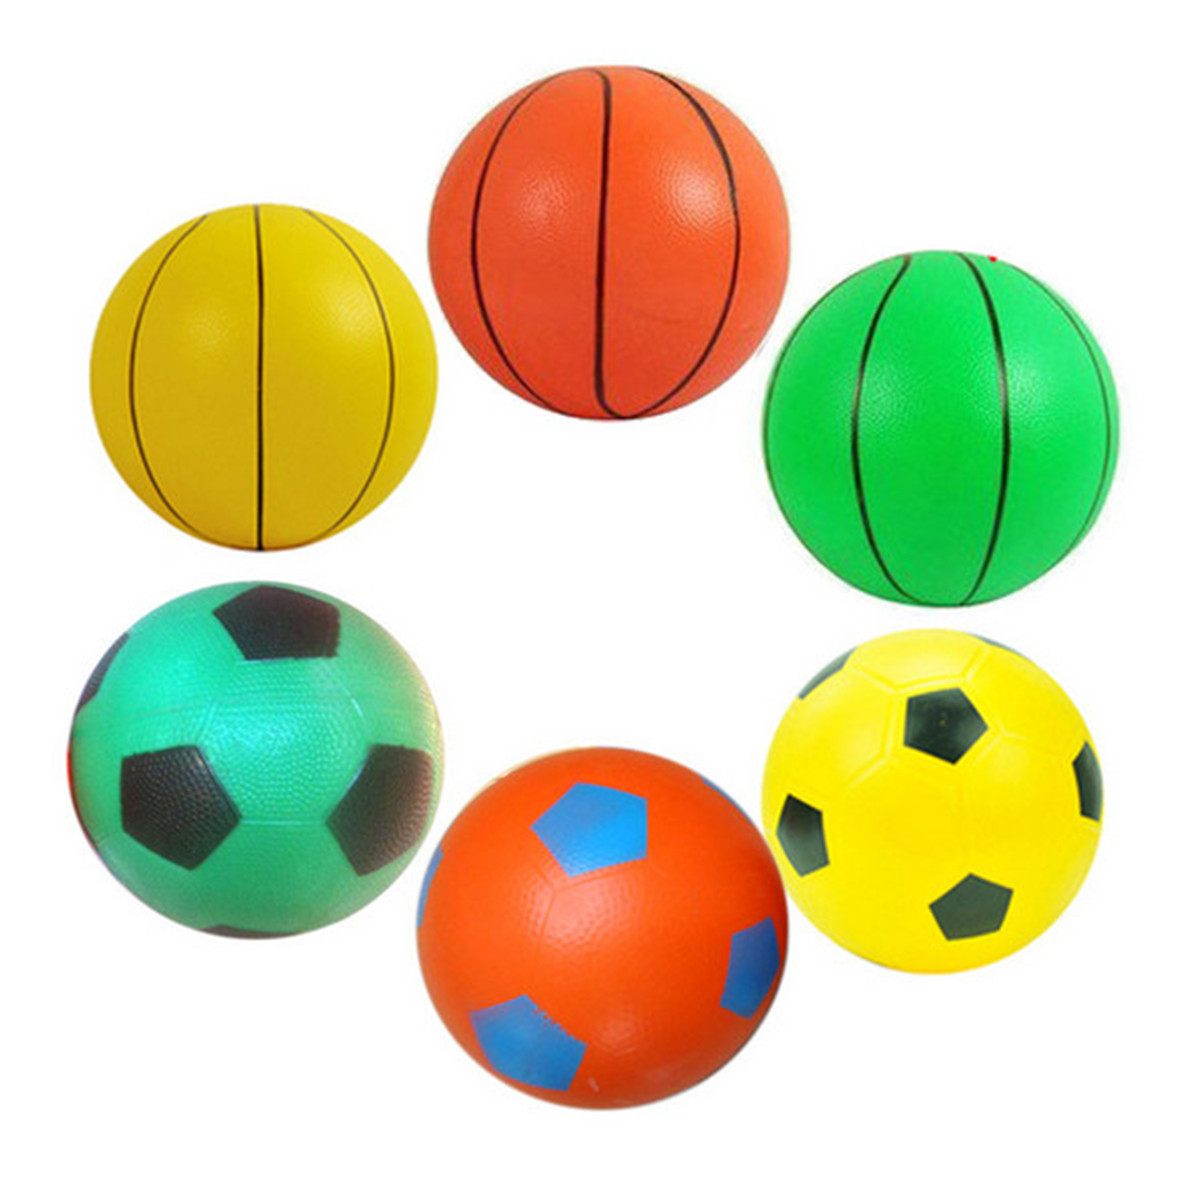 Popular Party Ball Games-Buy Cheap Party Ball Games lots from China Party Ball Games suppliers ...